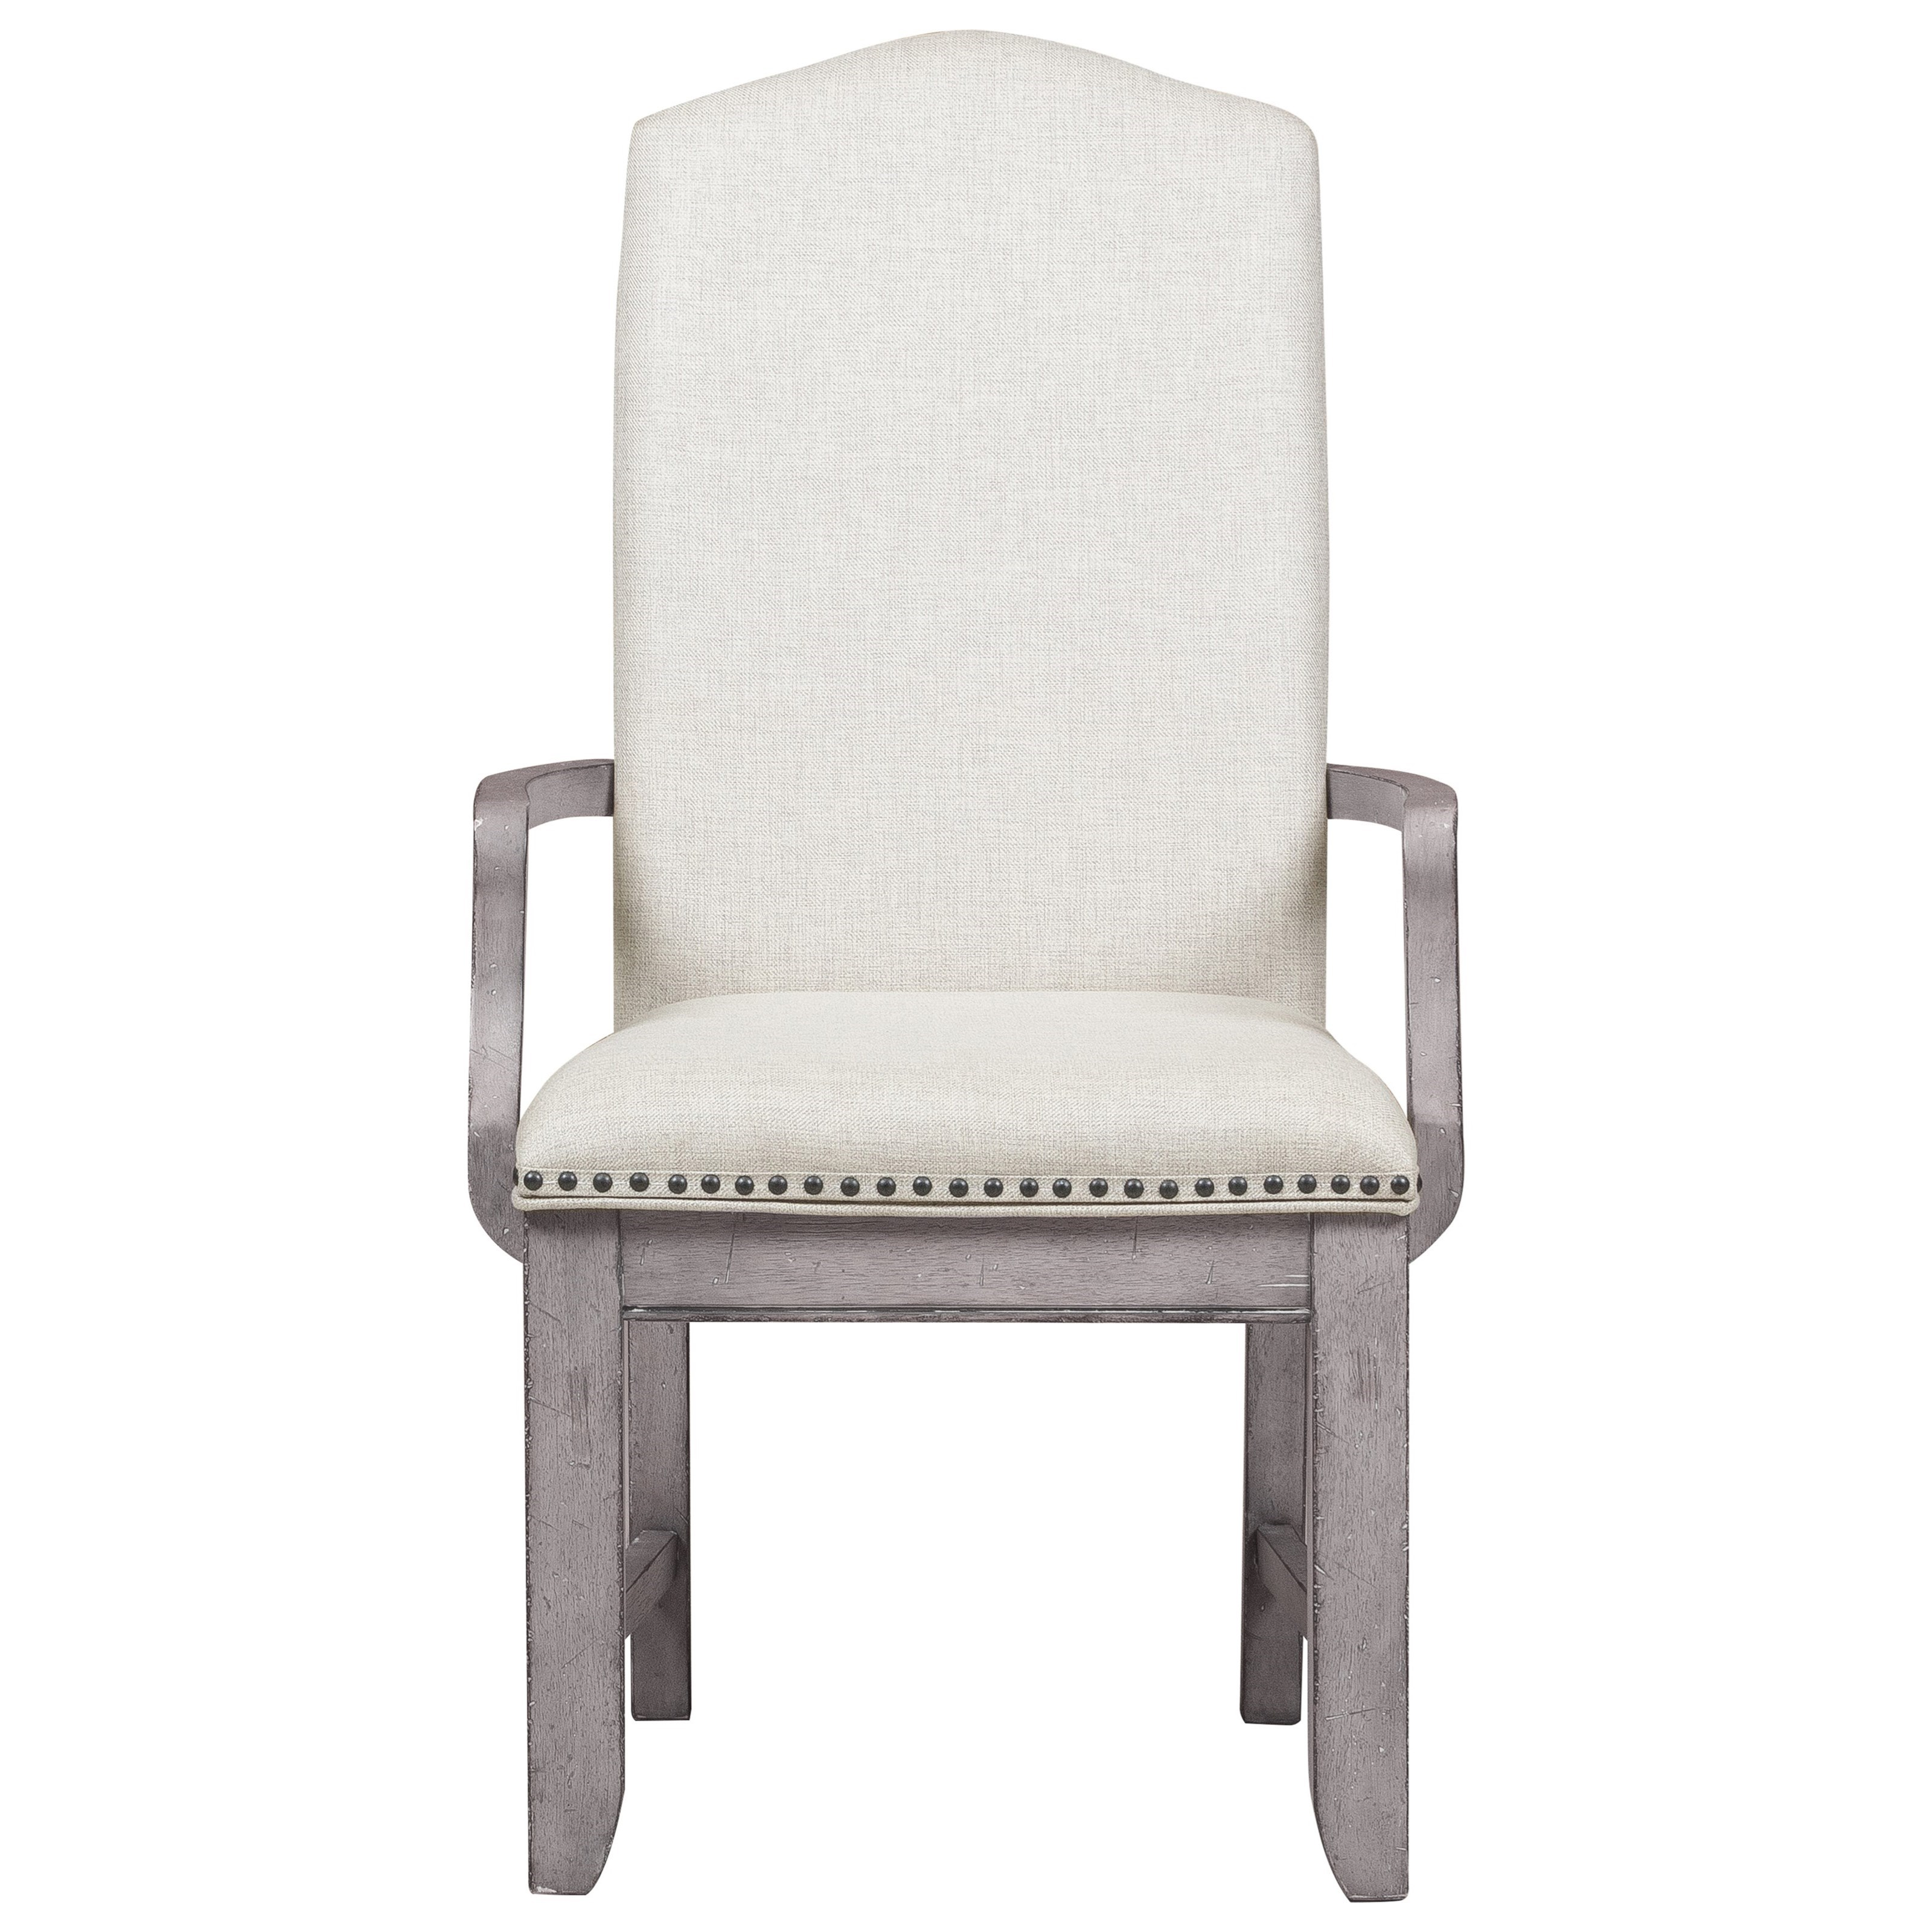 Prospect Hill Upholstered Arm Chair by Samuel Lawrence at Carolina Direct